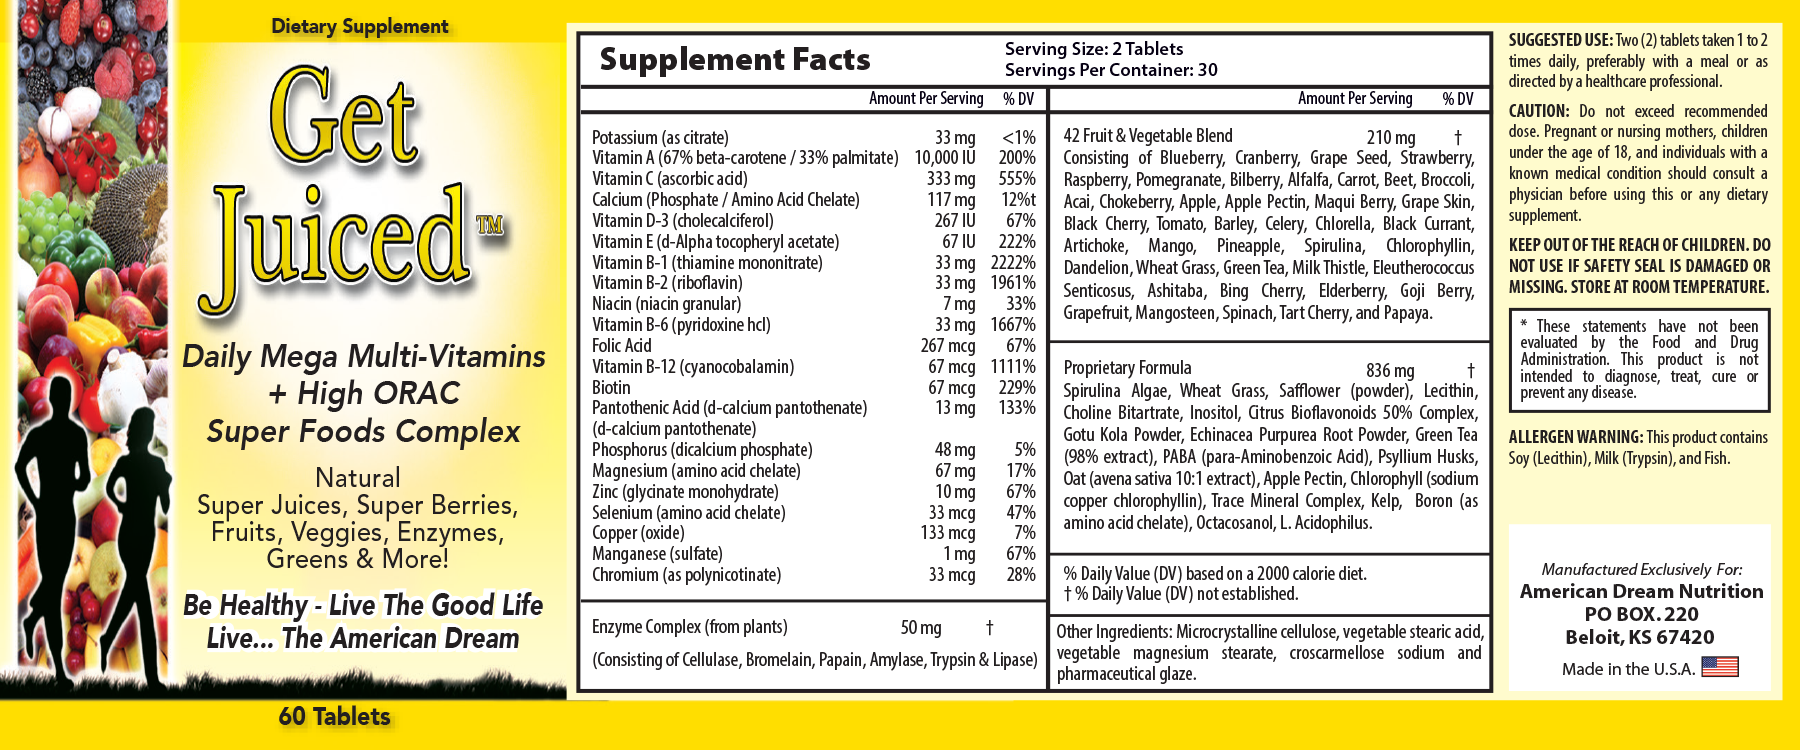 get-juiced-supplements-facts